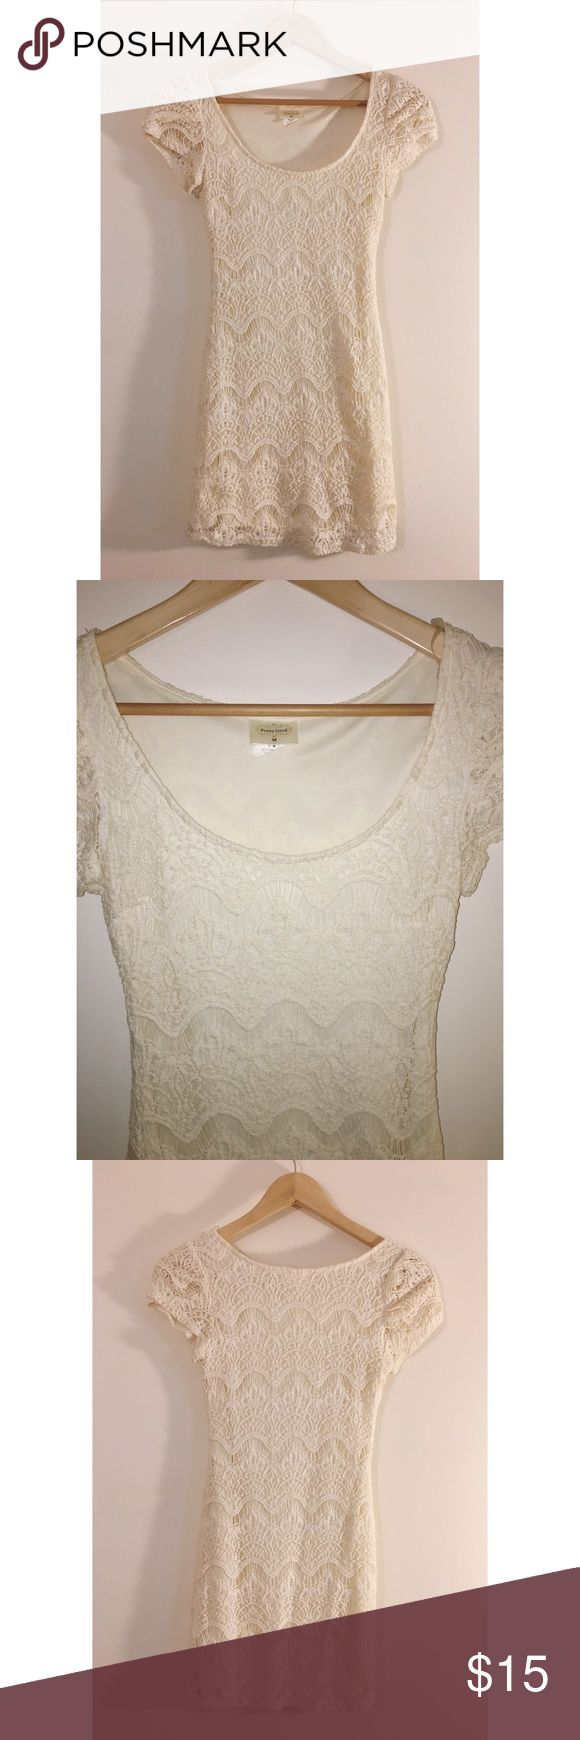 🌵Crochet Dress Cream/White crochet short dress. Says size M, but definitely fits like an XS-S. Wore twice, excellent condition. Brand is Pretty Good. 🌵ALL ITEMS WITH THIS SYMBOL🌵 ARE BOGO FREE! Dresses